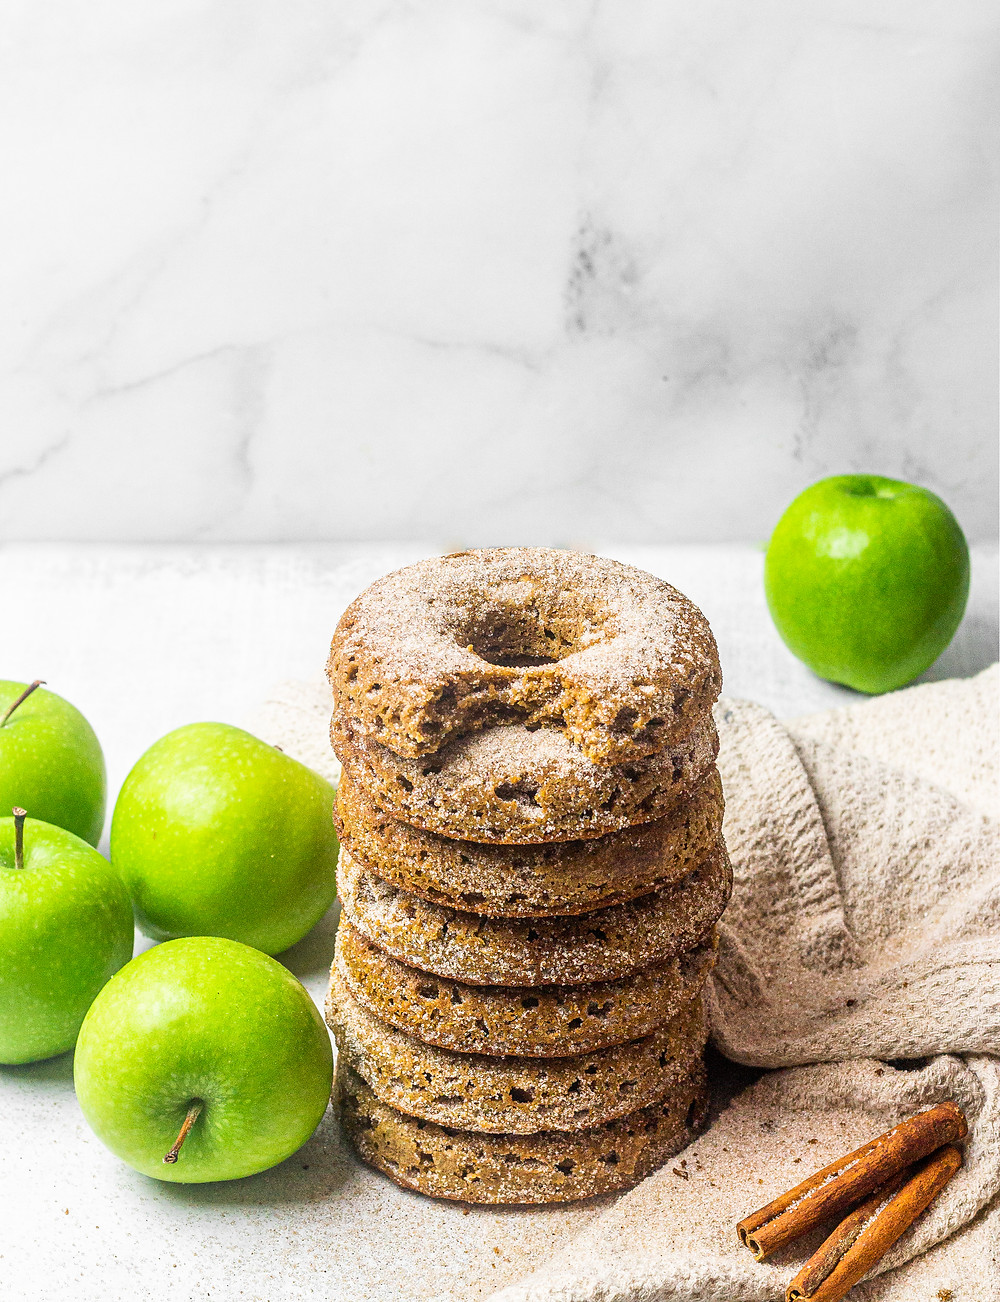 Pretty Delicious Life Low FODMAP, Grain Free Apple Cider Donuts - Growing up, apple picking was a fall tradition for my family. My parents would always take my younger brother and I to local orchards with family friends of ours at minimum once a season. I would always race to be the first to pick the BEST